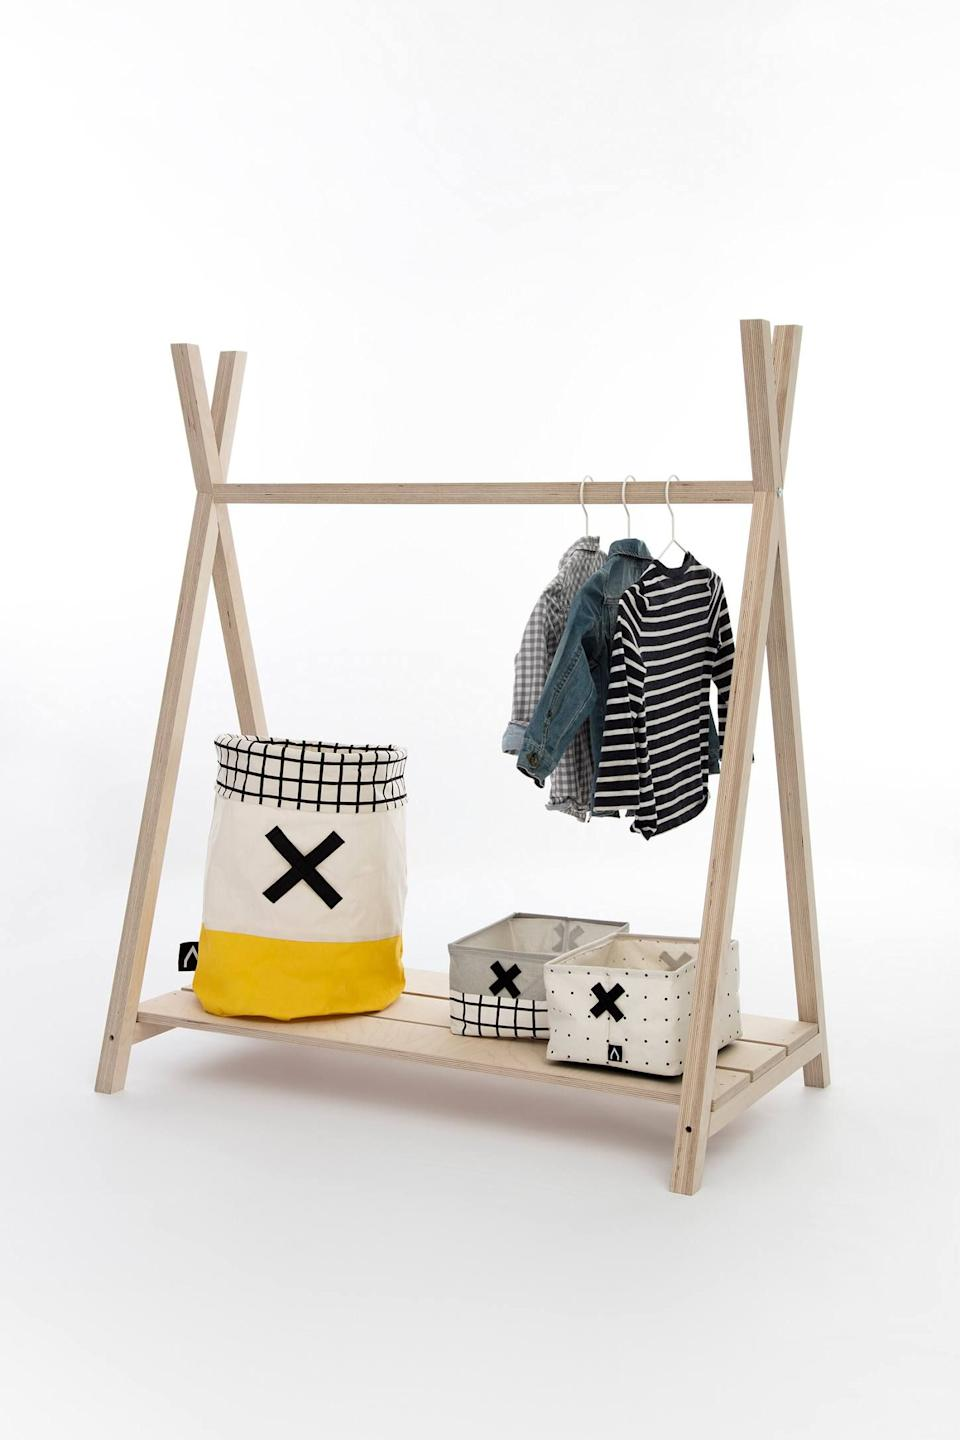 """<h3><a href=""""https://www.anthropologie.com/shop/gautier-studio-diabolo-coat-rack"""" rel=""""nofollow noopener"""" target=""""_blank"""" data-ylk=""""slk:Gautier Studio Diabolo Coat Rack"""" class=""""link rapid-noclick-resp"""">Gautier Studio Diabolo Coat Rack</a> </h3><p>The compact design of this freestanding coat rack makes for a stylishly minimalist and functional solution to saving space — stick one end up against a wall to section the room off with hanging coats as the """"screen.""""</p><br><br><strong>Gautier Studio</strong> Gautier Studio Diabolo Coat Rack, $214, available at <a href=""""https://www.anthropologie.com/shop/gautier-studio-diabolo-coat-rack"""" rel=""""nofollow noopener"""" target=""""_blank"""" data-ylk=""""slk:Anthropologie"""" class=""""link rapid-noclick-resp"""">Anthropologie</a>"""